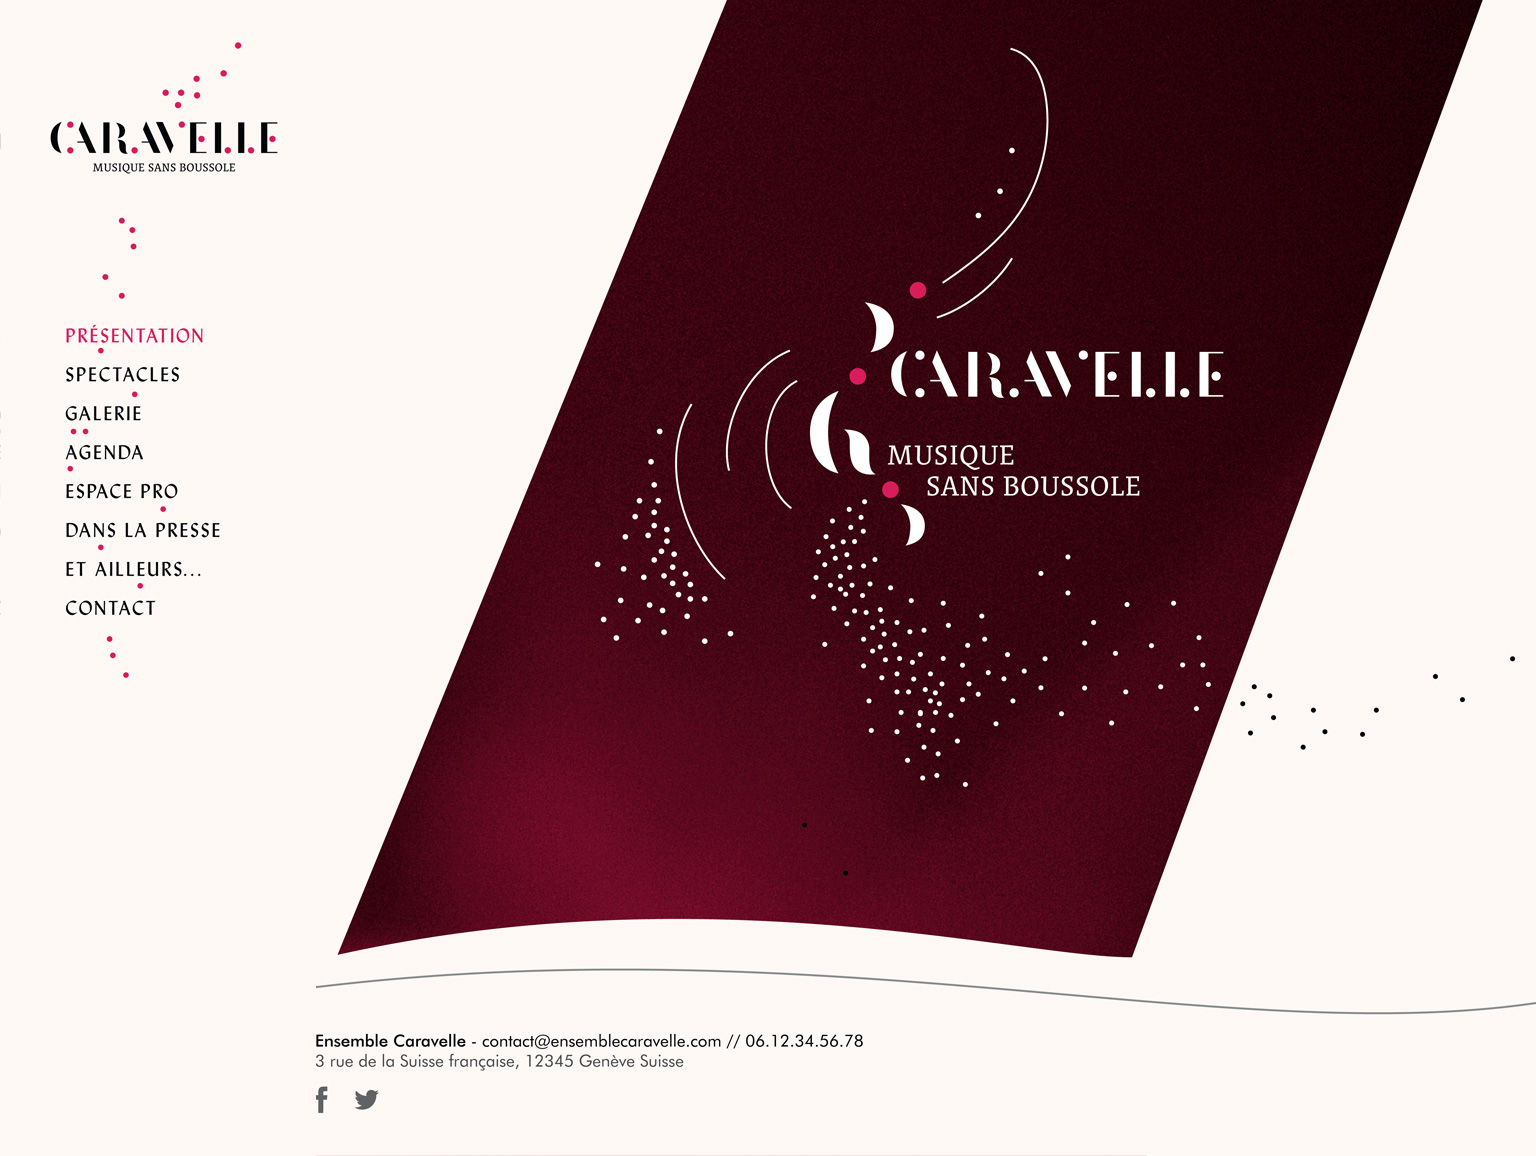 caravelle-site1